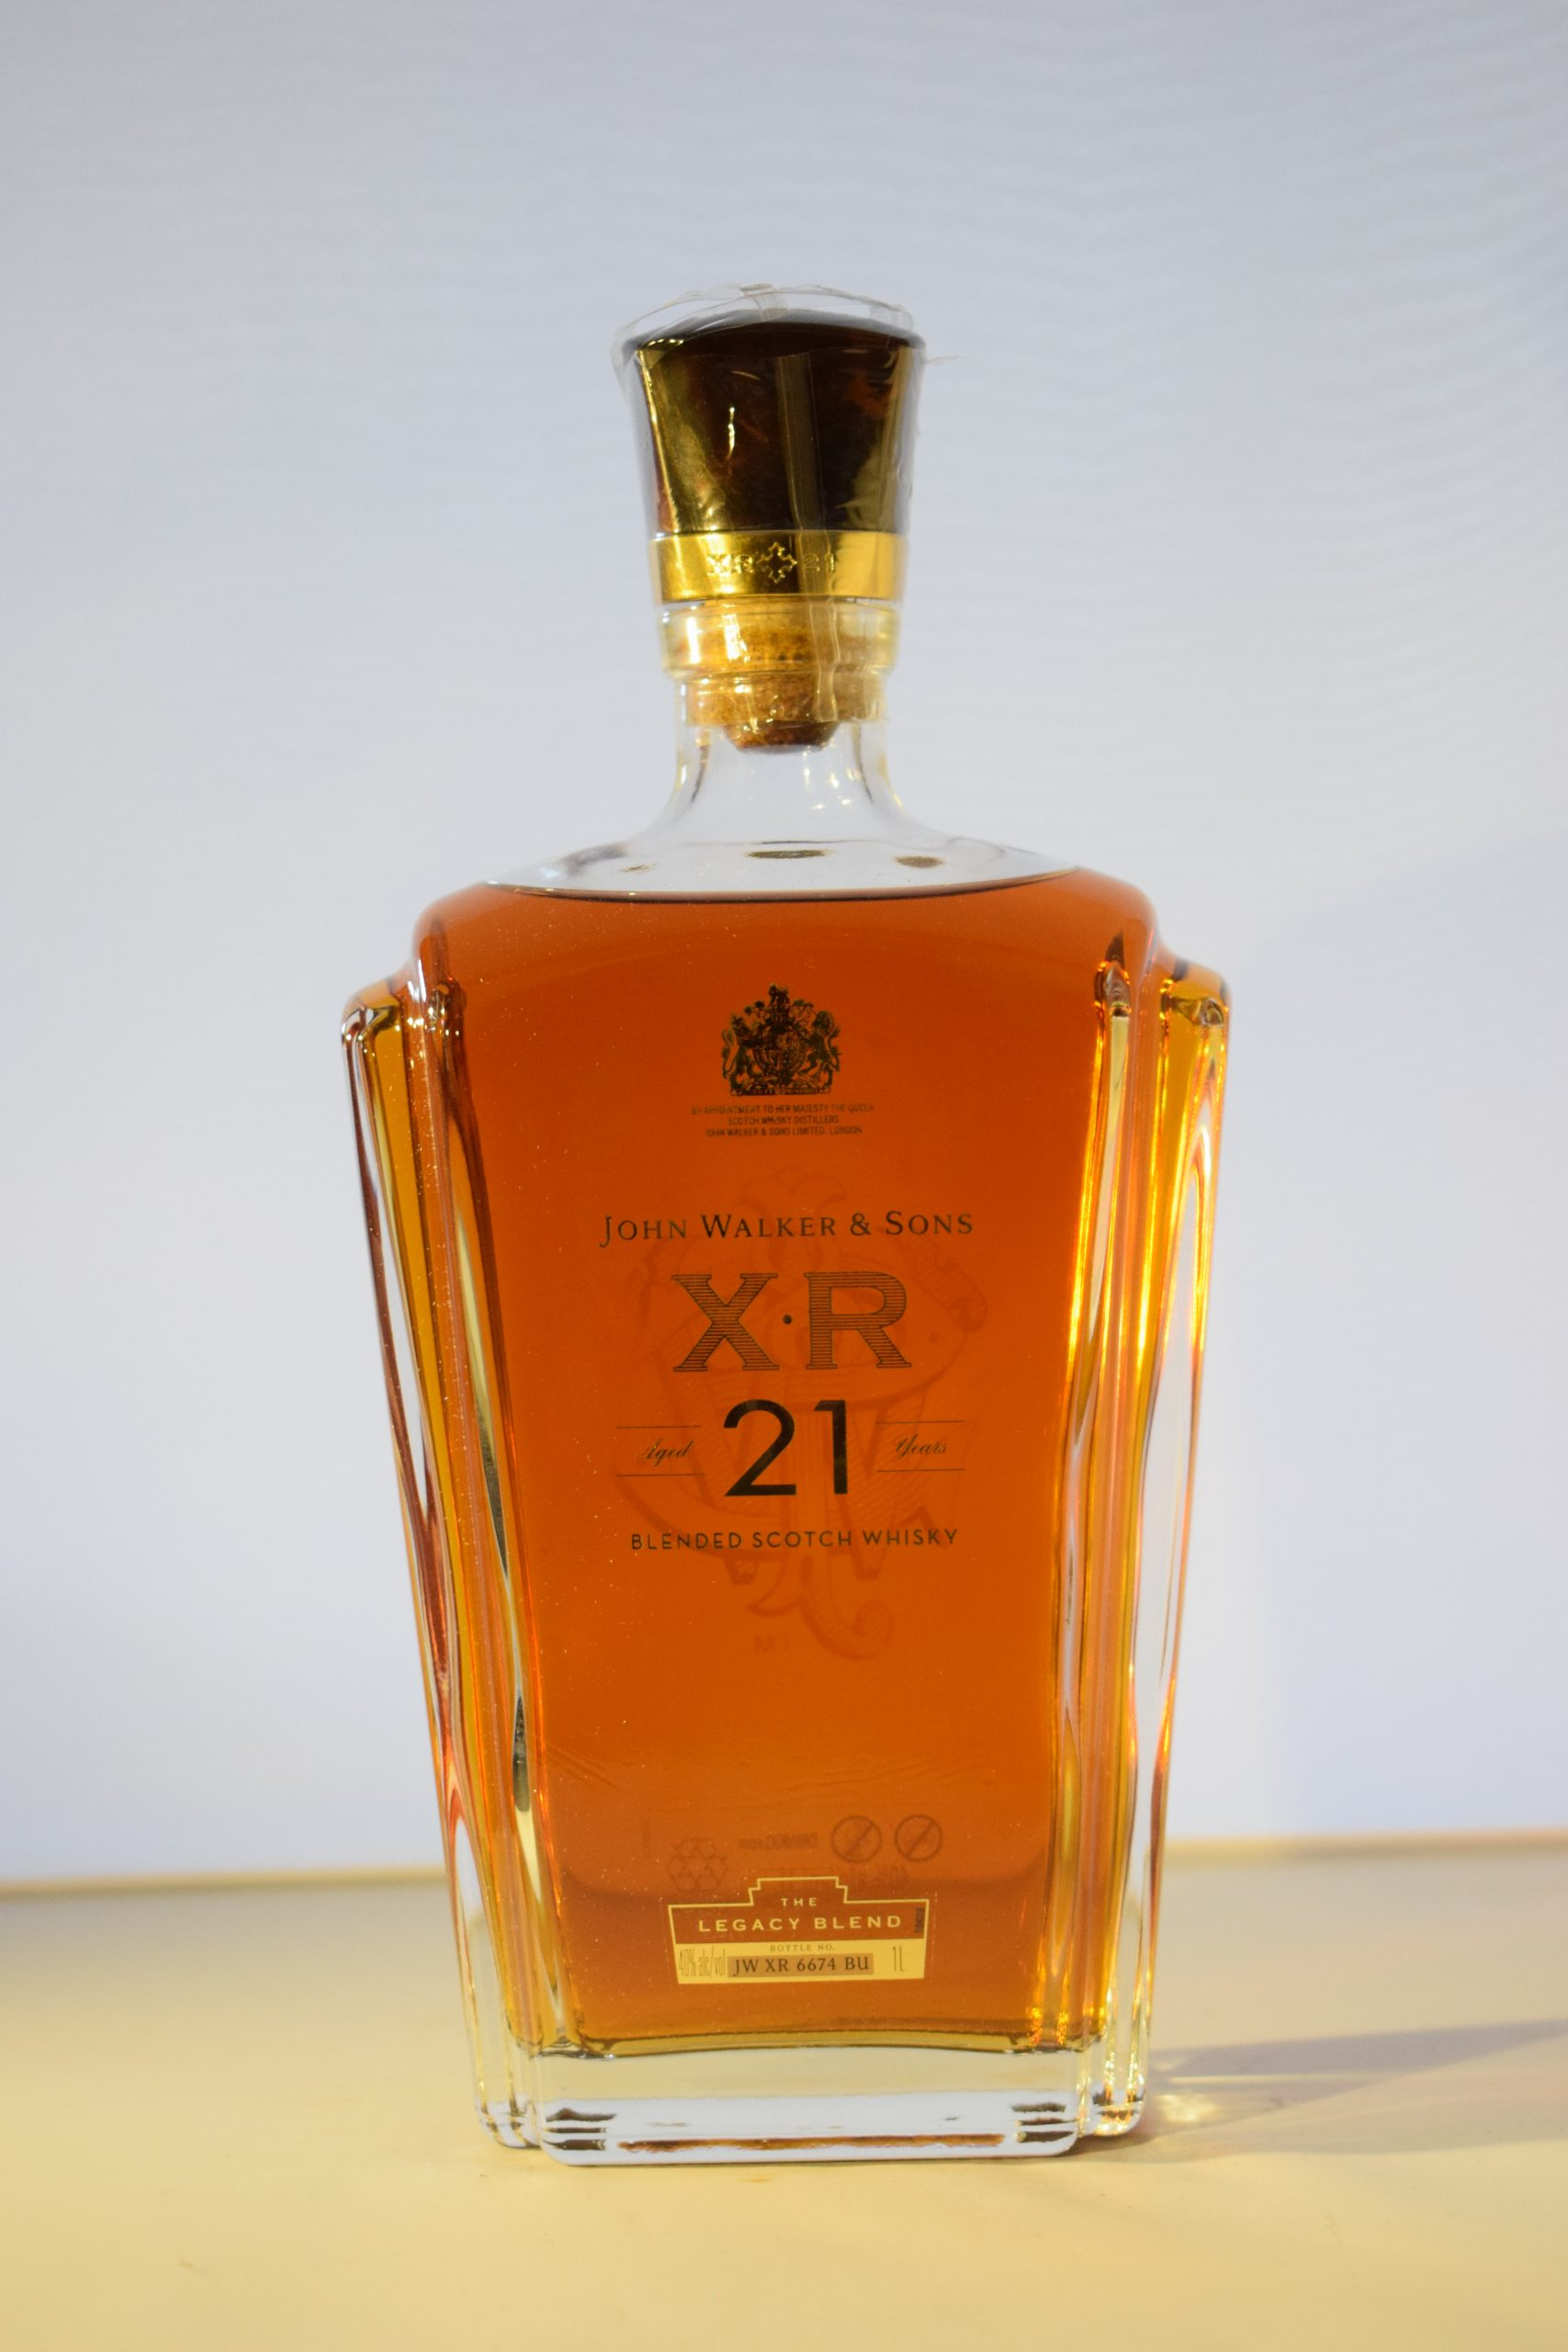 Johnnie Walker X.R 21 Year 70cl